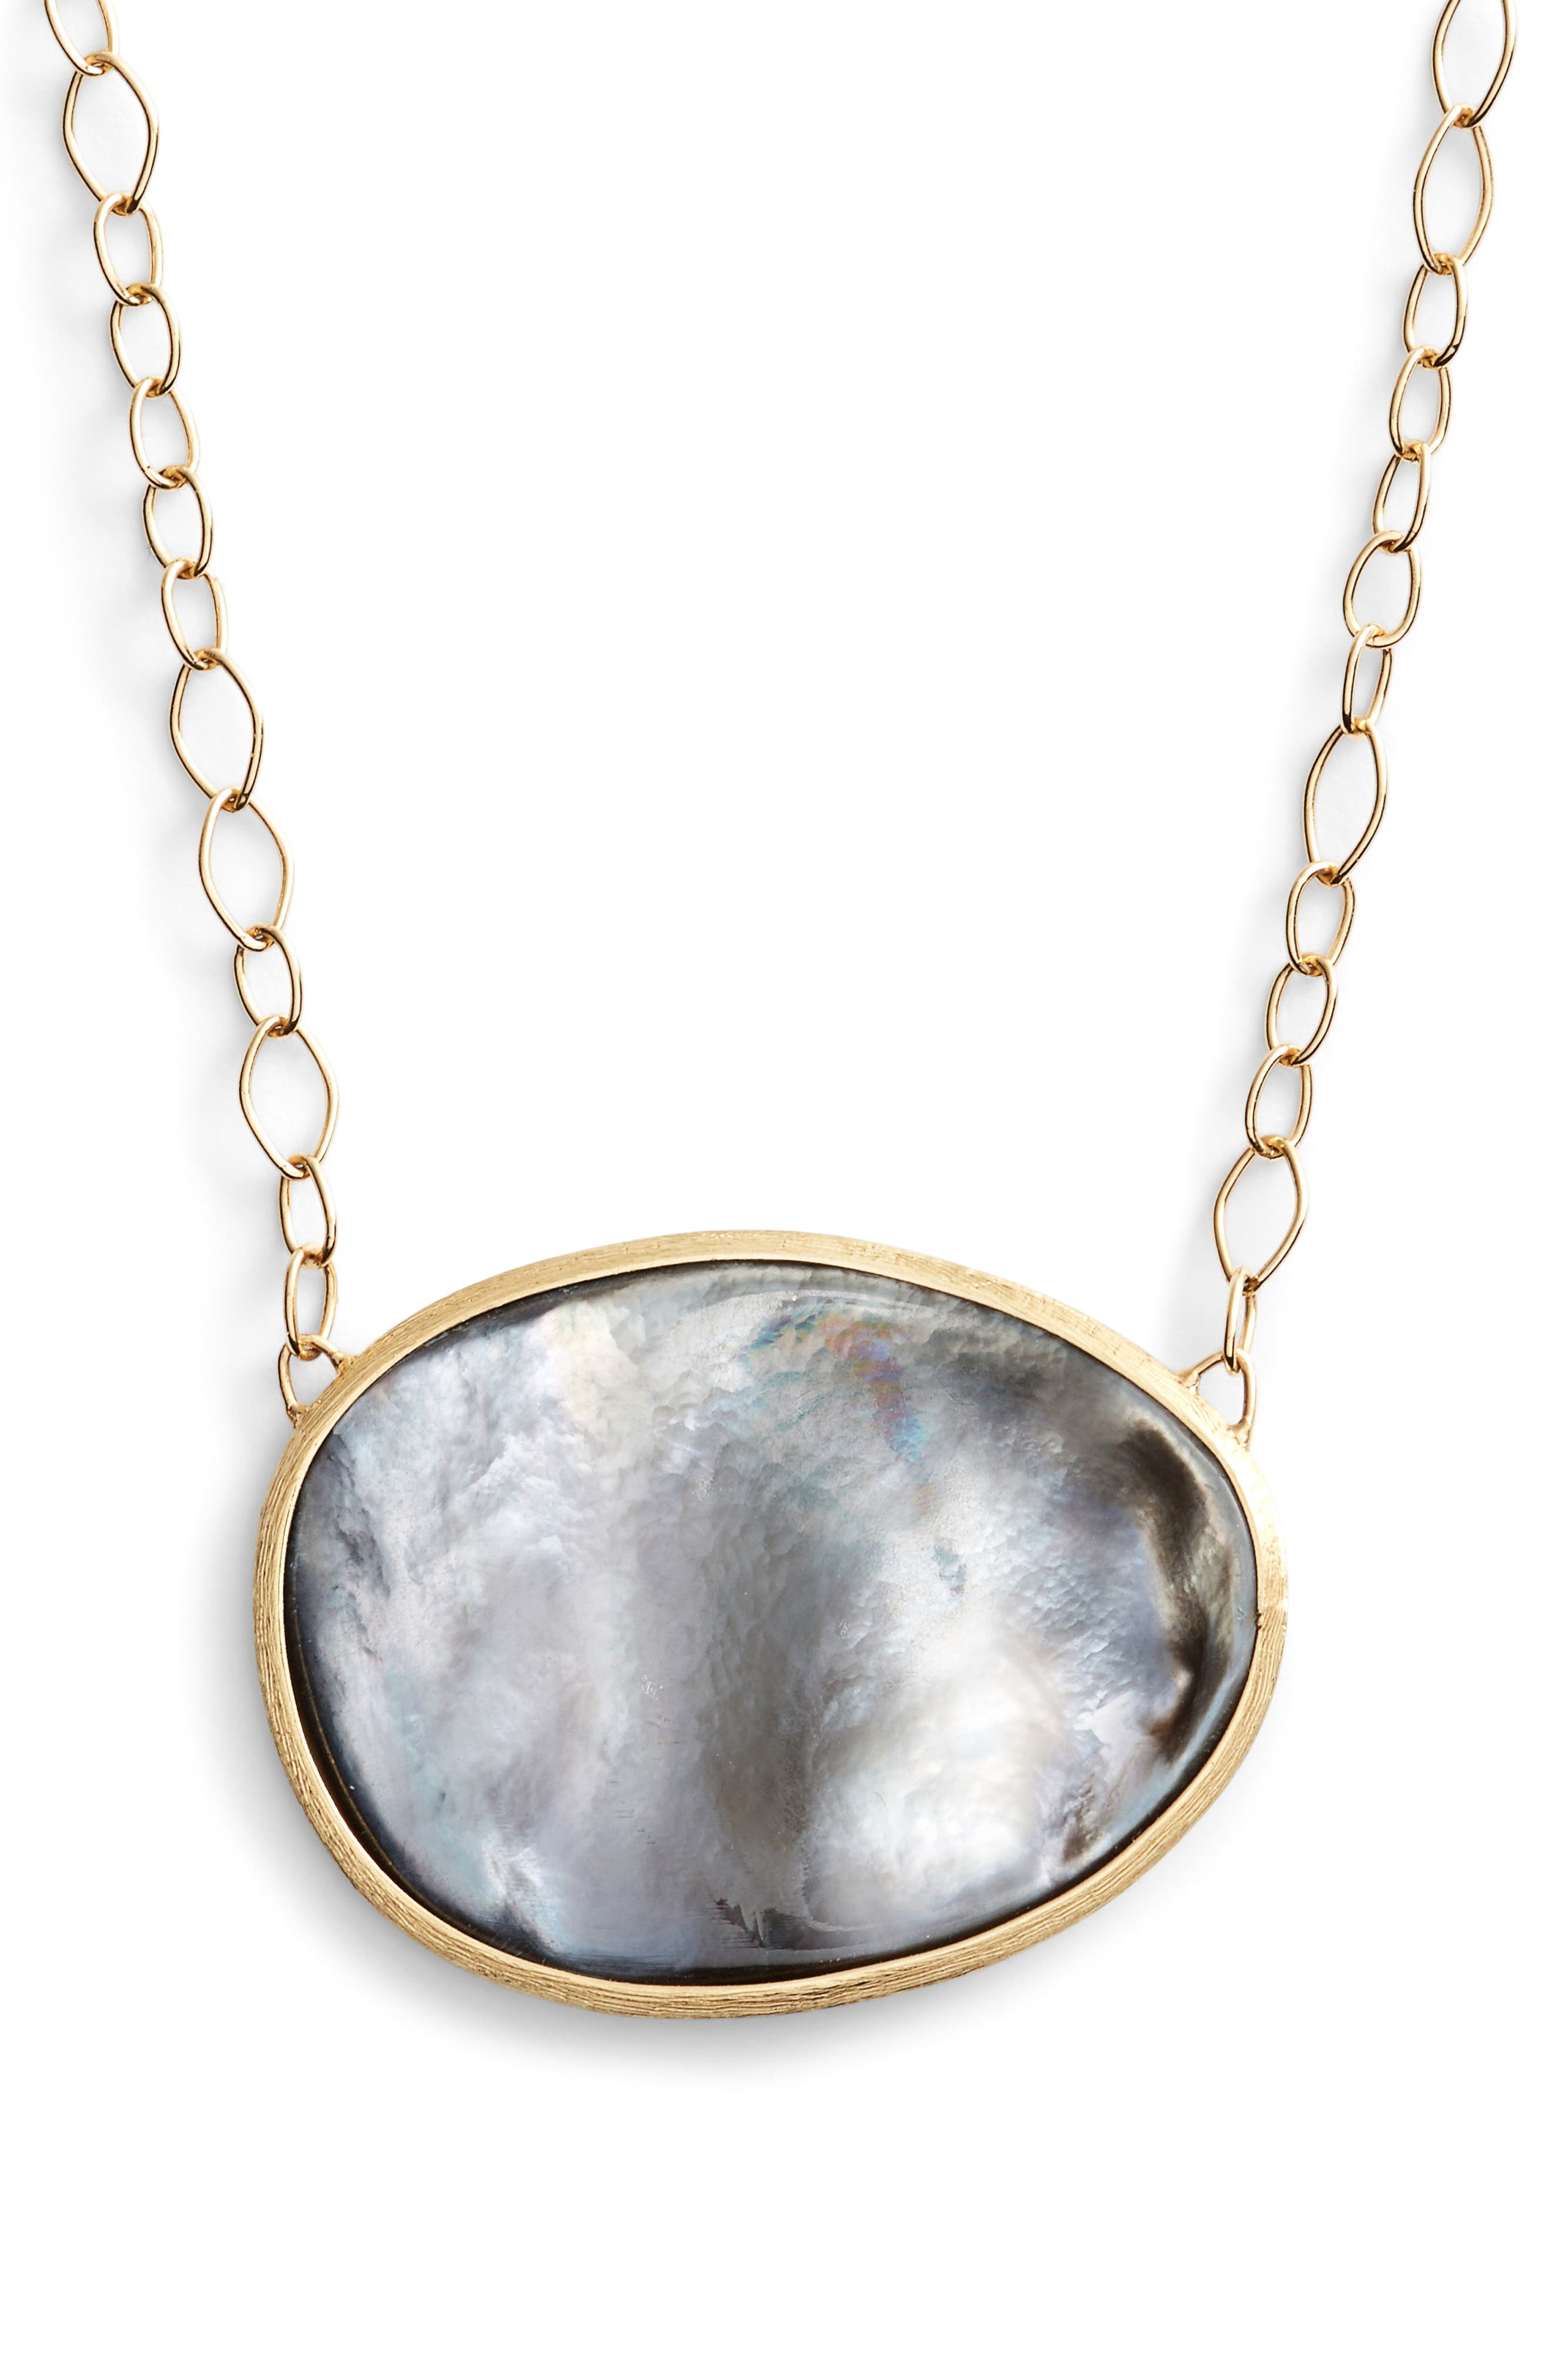 Lunaria Mother of Pearl Pendant Necklace,                             Main thumbnail 1, color,                             GREY MOTHER OF PEARL